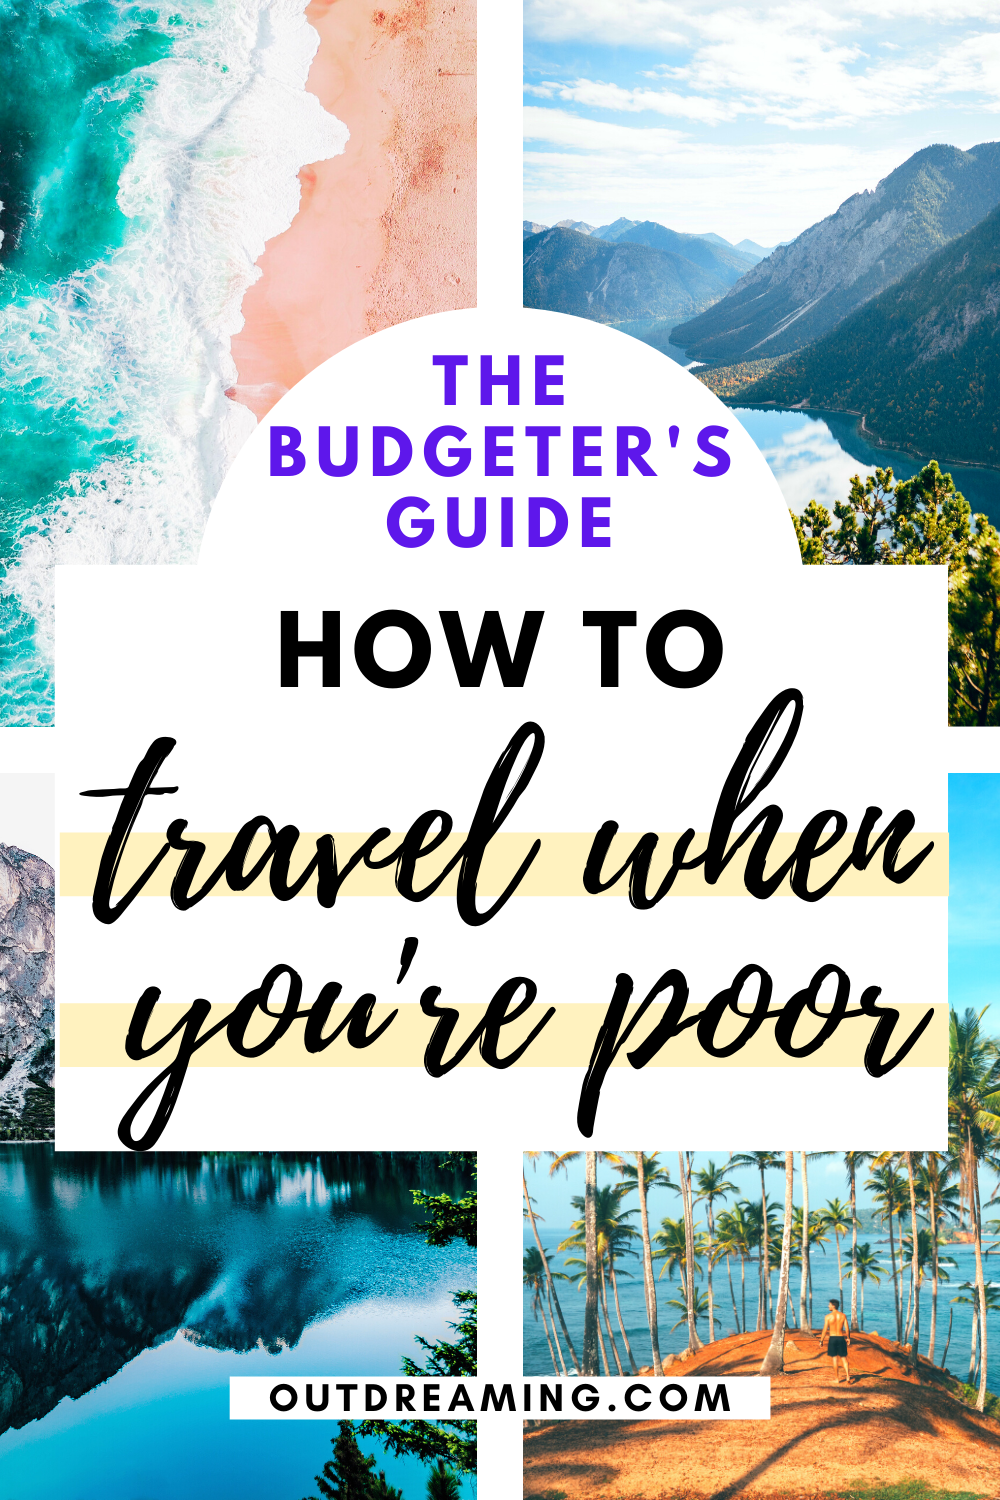 I often wonder how people afford traveling to beautiful destinations and cheap countries. As someone who has to travel on a budget, I'm always looking for new budgeting tips. These budget travel tips are perfect for anyone who wants to travel the world and visit their bucket list destinations. This post will show you real ways on how to save money on a budget and how to make money while traveling. #traveltips #budgettips #budgeting #budgettravel #travelblog #debtfree